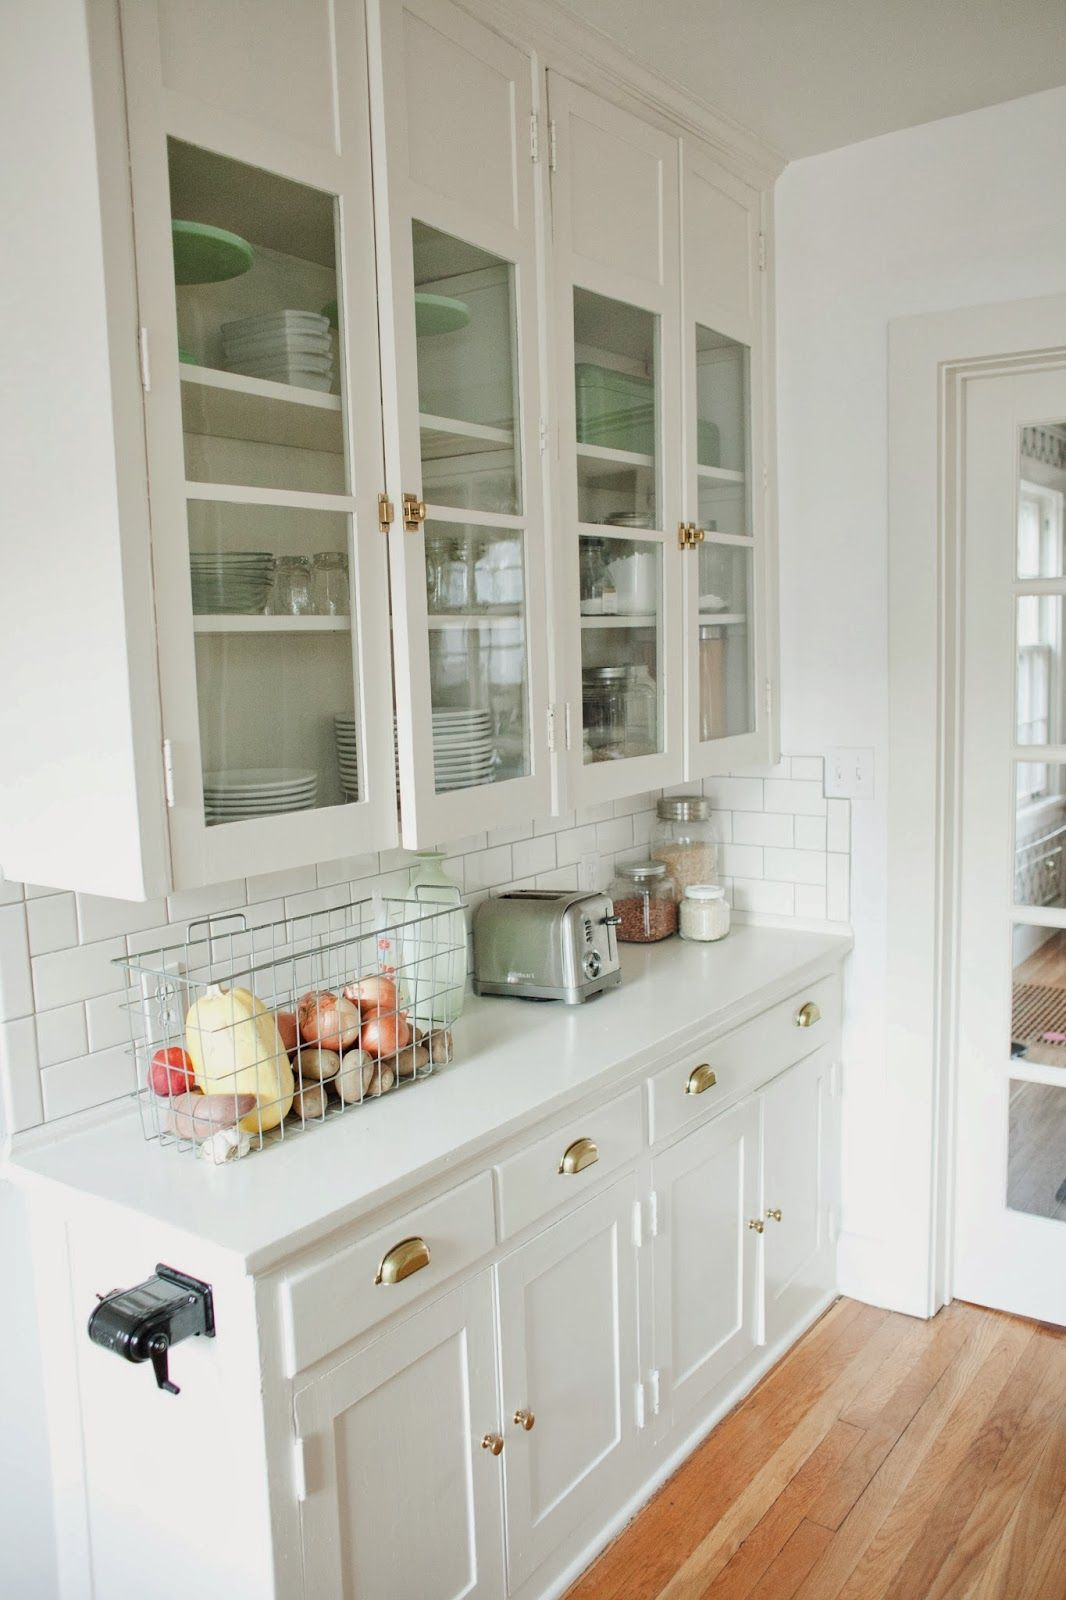 Original 1920s Built Ins Want To Recreate These With Ikea Cabinets And I Want The Pencil